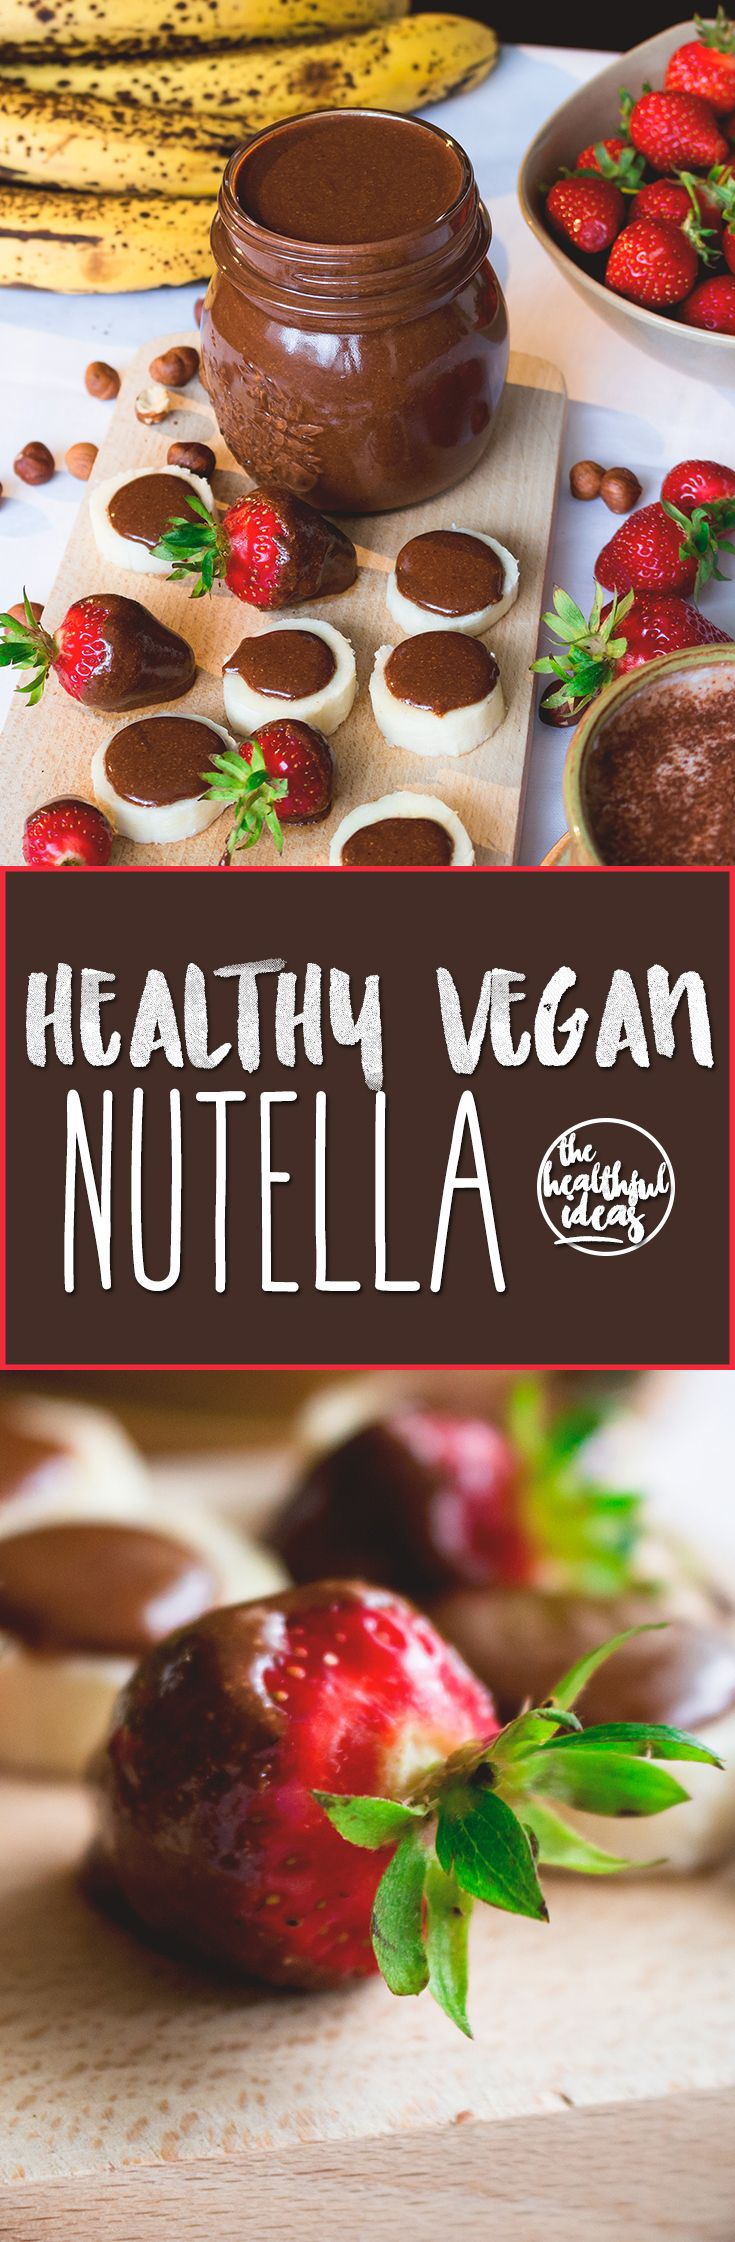 Healthy Nutella - I love this recipe! Only roasted hazelnuts, maple sugar, sea salt, and cacao powder! Really easy to make and super delicious. You'll never eat the store-bought kind again!   thehealthfulideas.com